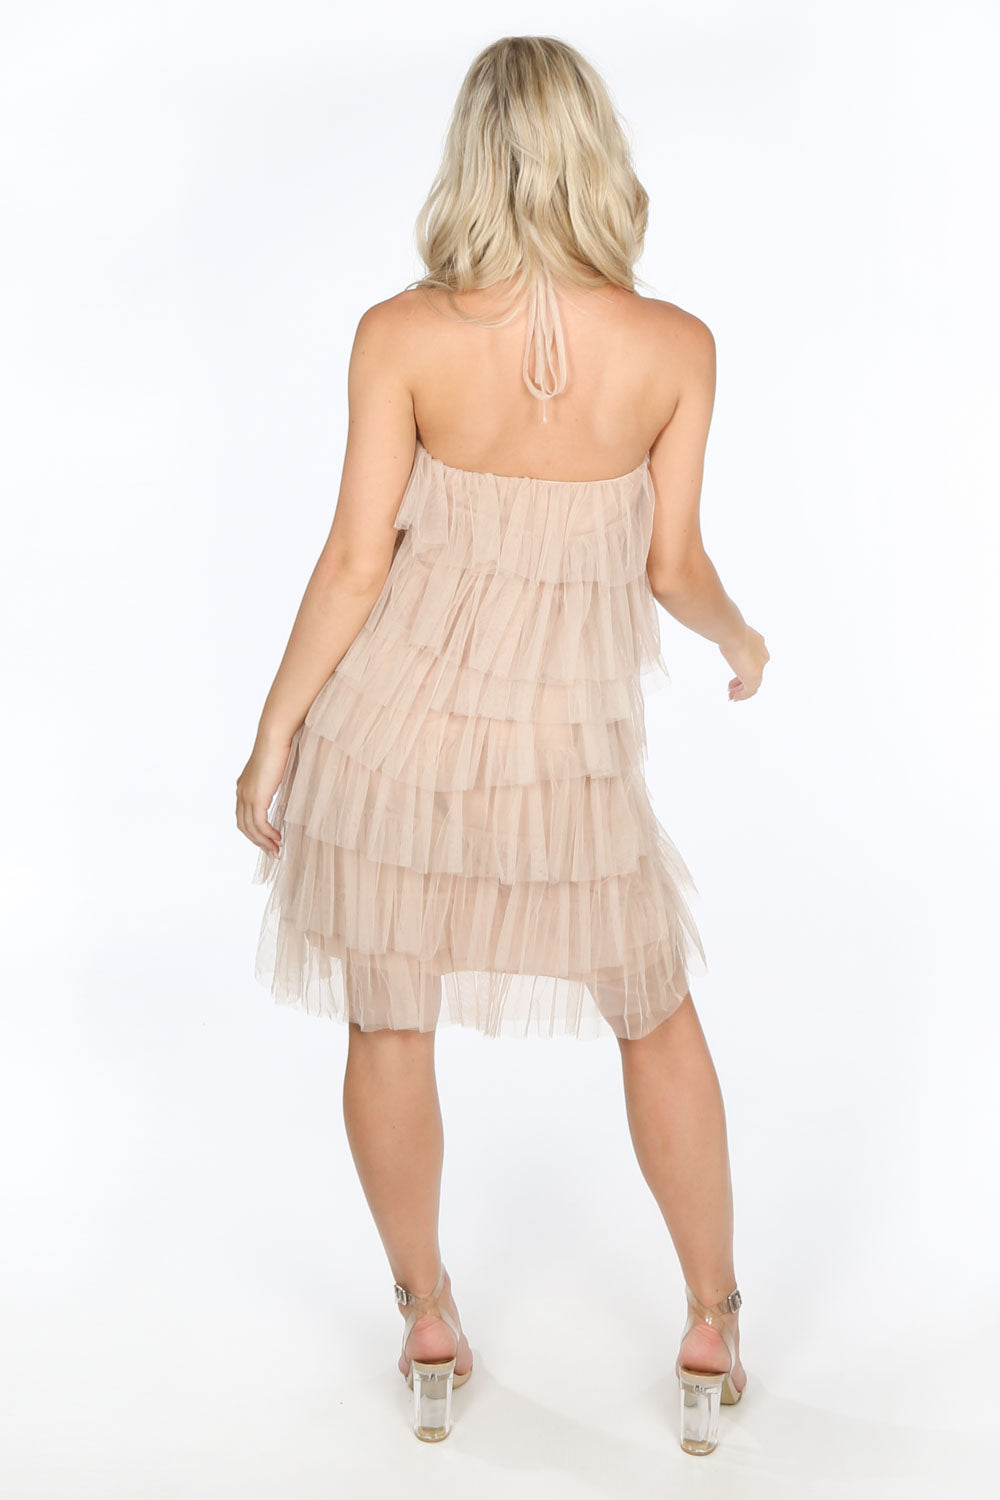 Nude Layered Tulle Halter Neck Dress